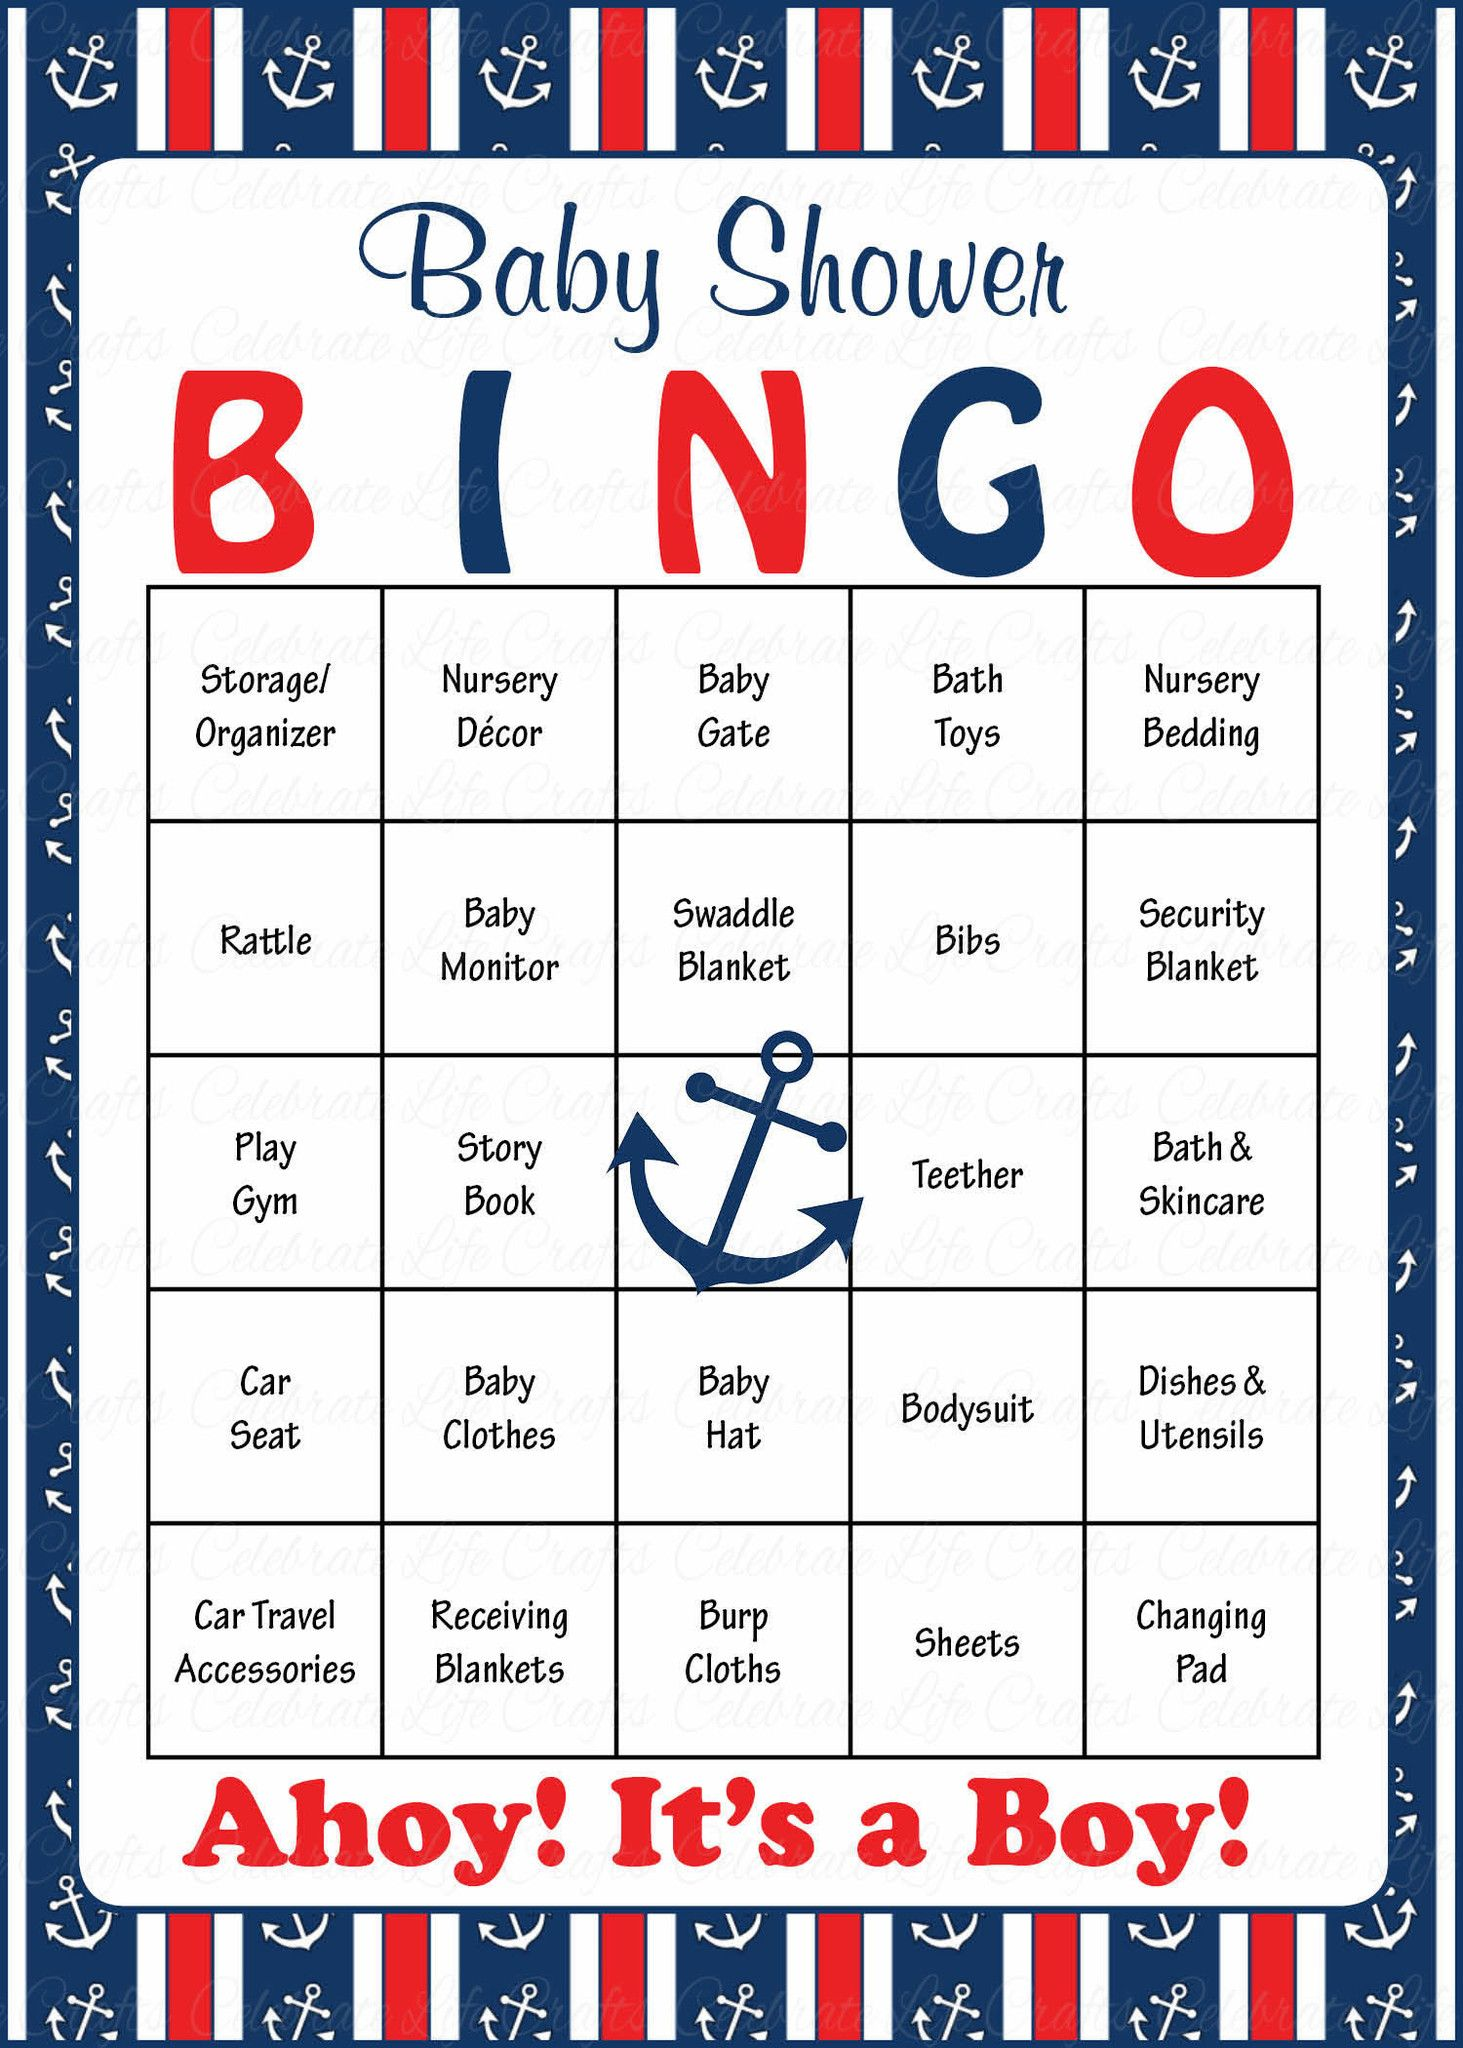 Nautical Baby Bingo Cards   Printable Download   Prefilled   Anchor Baby  Shower Game For Boy   Navy U0026 Red